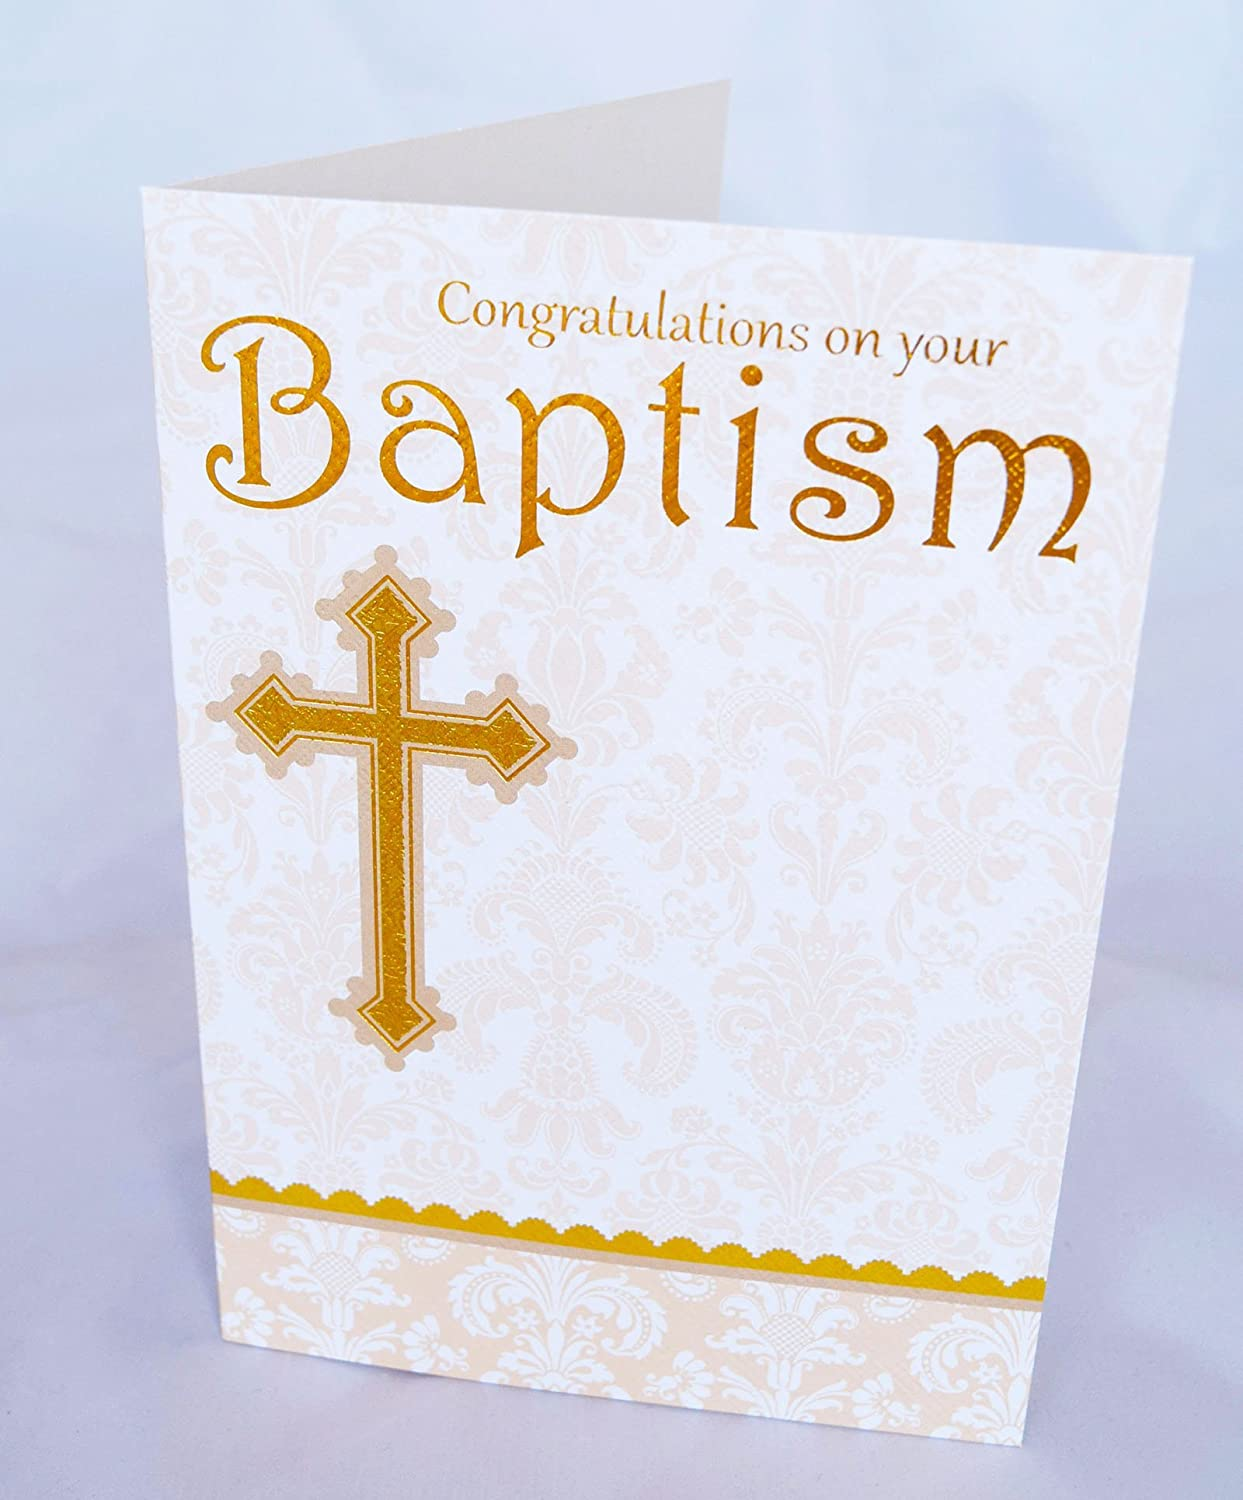 Congratulations On Your Baptism Card Christening Adult Child